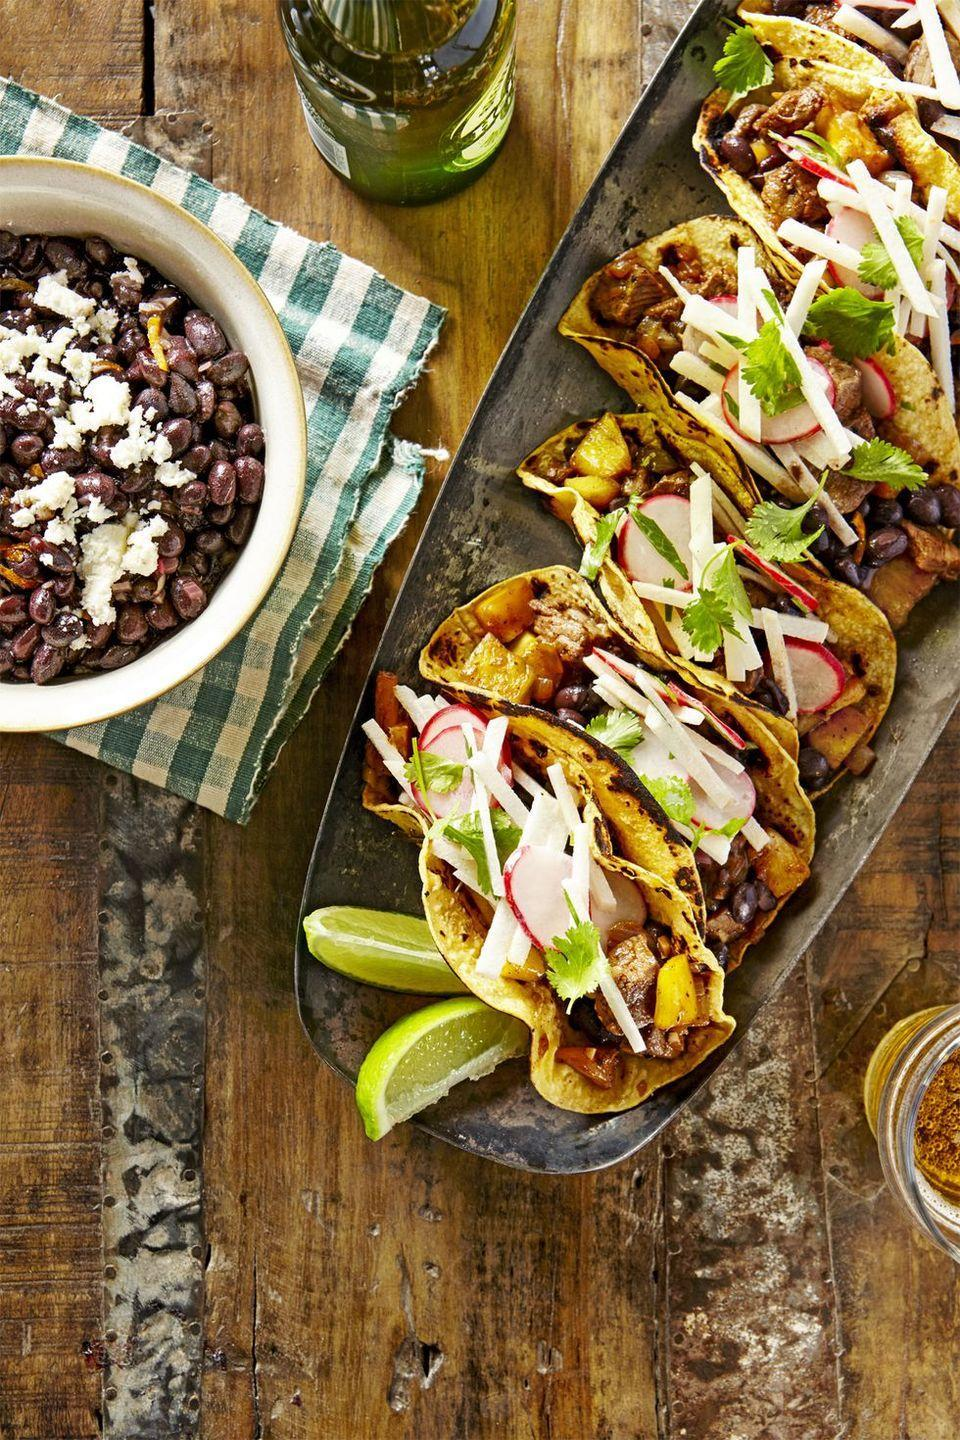 """<p>Bring on the <a href=""""https://www.goodhousekeeping.com/food-recipes/cooking/tips/g1935/cut-whole-pineapple/"""" rel=""""nofollow noopener"""" target=""""_blank"""" data-ylk=""""slk:pineapple"""" class=""""link rapid-noclick-resp"""">pineapple</a>! (Plus, and save some extra slices for snacking.)</p><p><em><a href=""""https://www.countryliving.com/food-drinks/recipes/a39826/beef-and-pineapple-tacos-with-mojo-beans-recipe/"""" rel=""""nofollow noopener"""" target=""""_blank"""" data-ylk=""""slk:Get the recipe from Country Living »"""" class=""""link rapid-noclick-resp"""">Get the recipe from Country Living »</a></em></p>"""